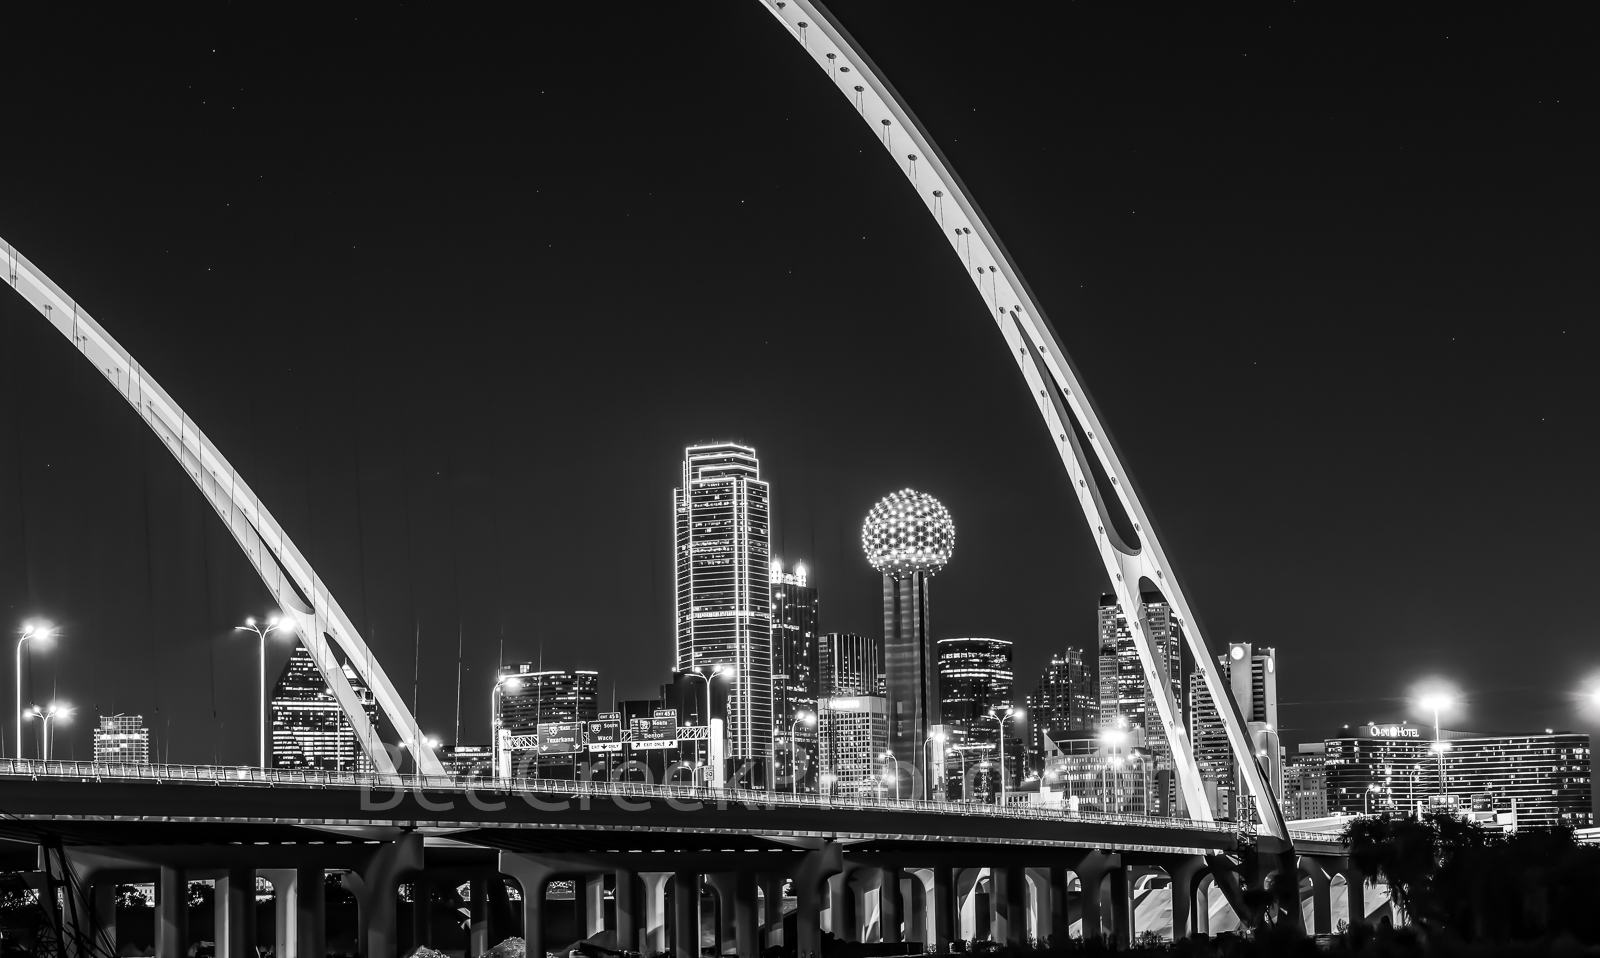 Dallas skyline, Margaret McDermott Bridge, black and white, BW, downtown, dark, steel bridge, suspended, arches, Trinity River,, IH30,  Trinity project, Santiago Calatrava, pedestrian, bike path, hike, photo